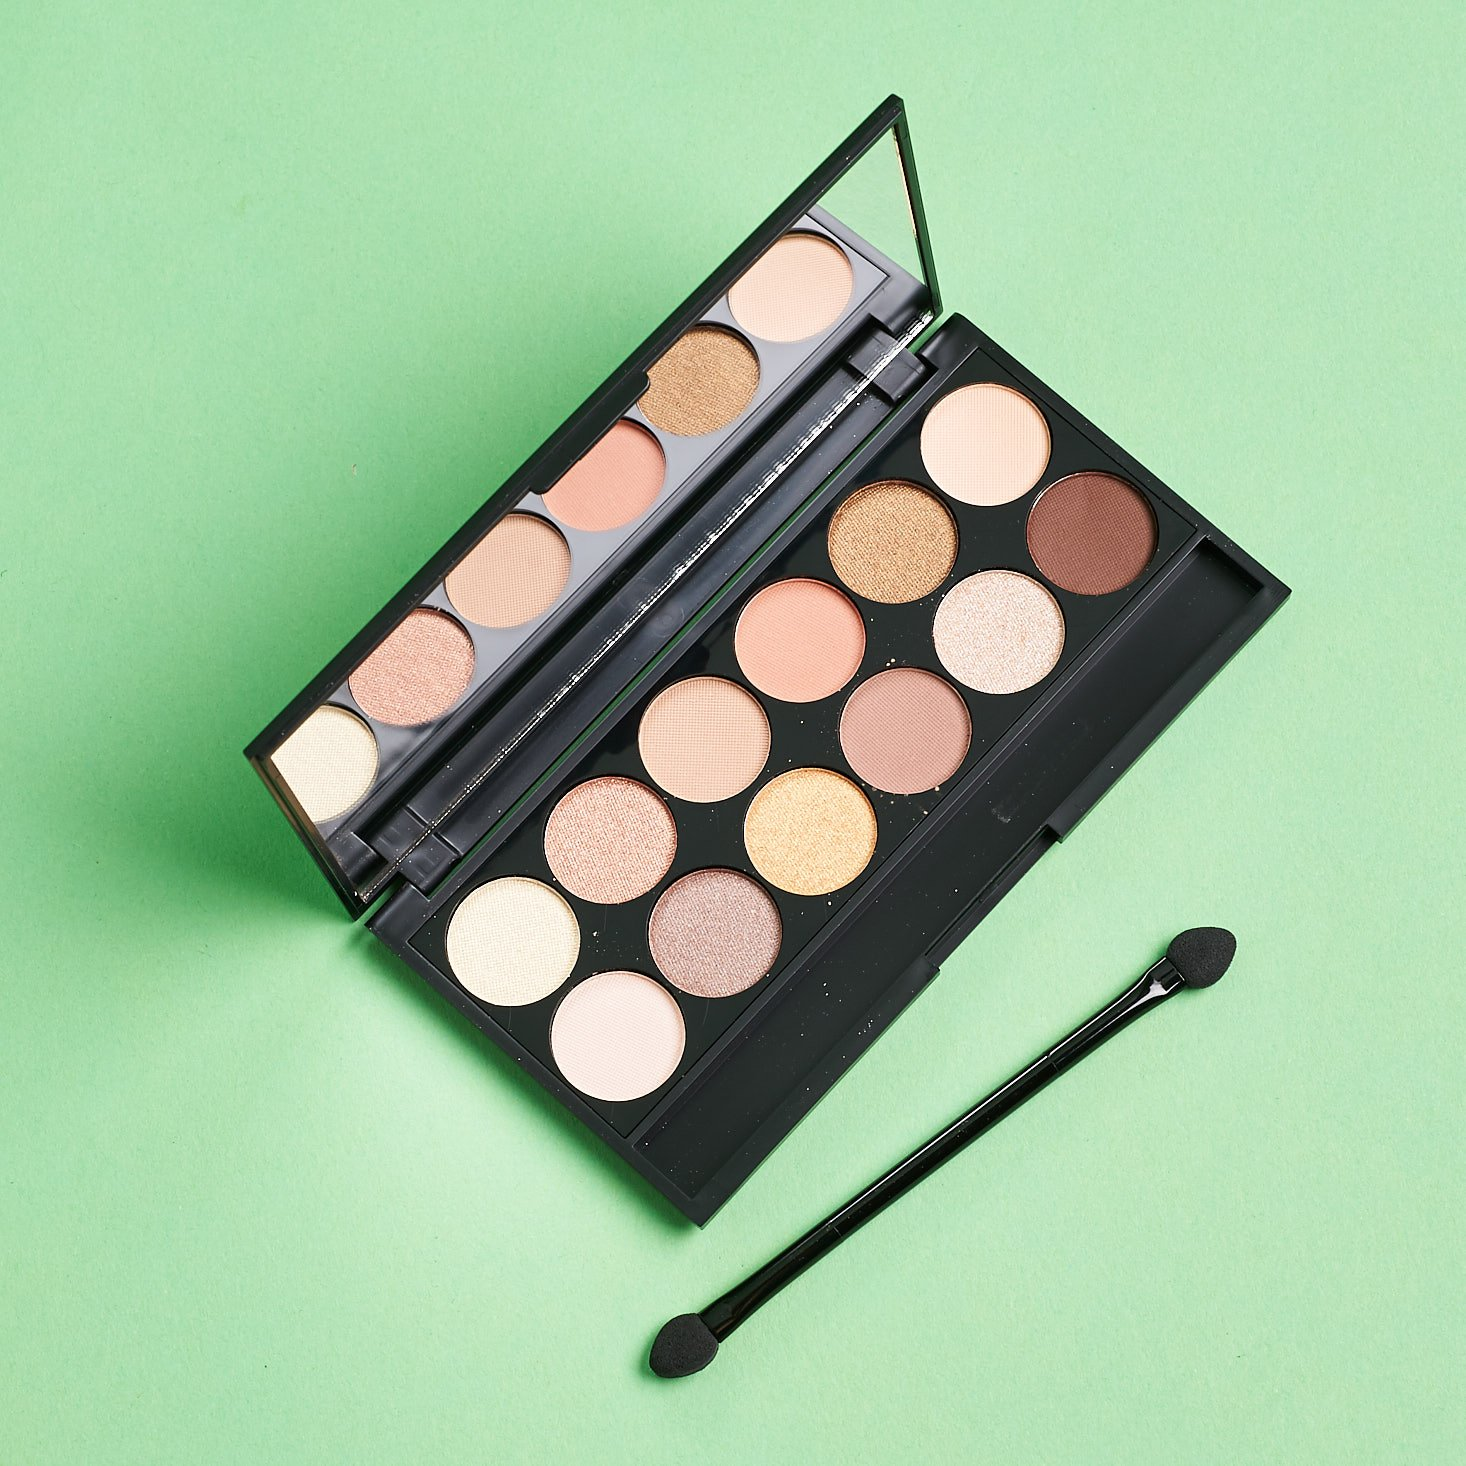 Glossybox June 2019 beauty subscription box review palette open